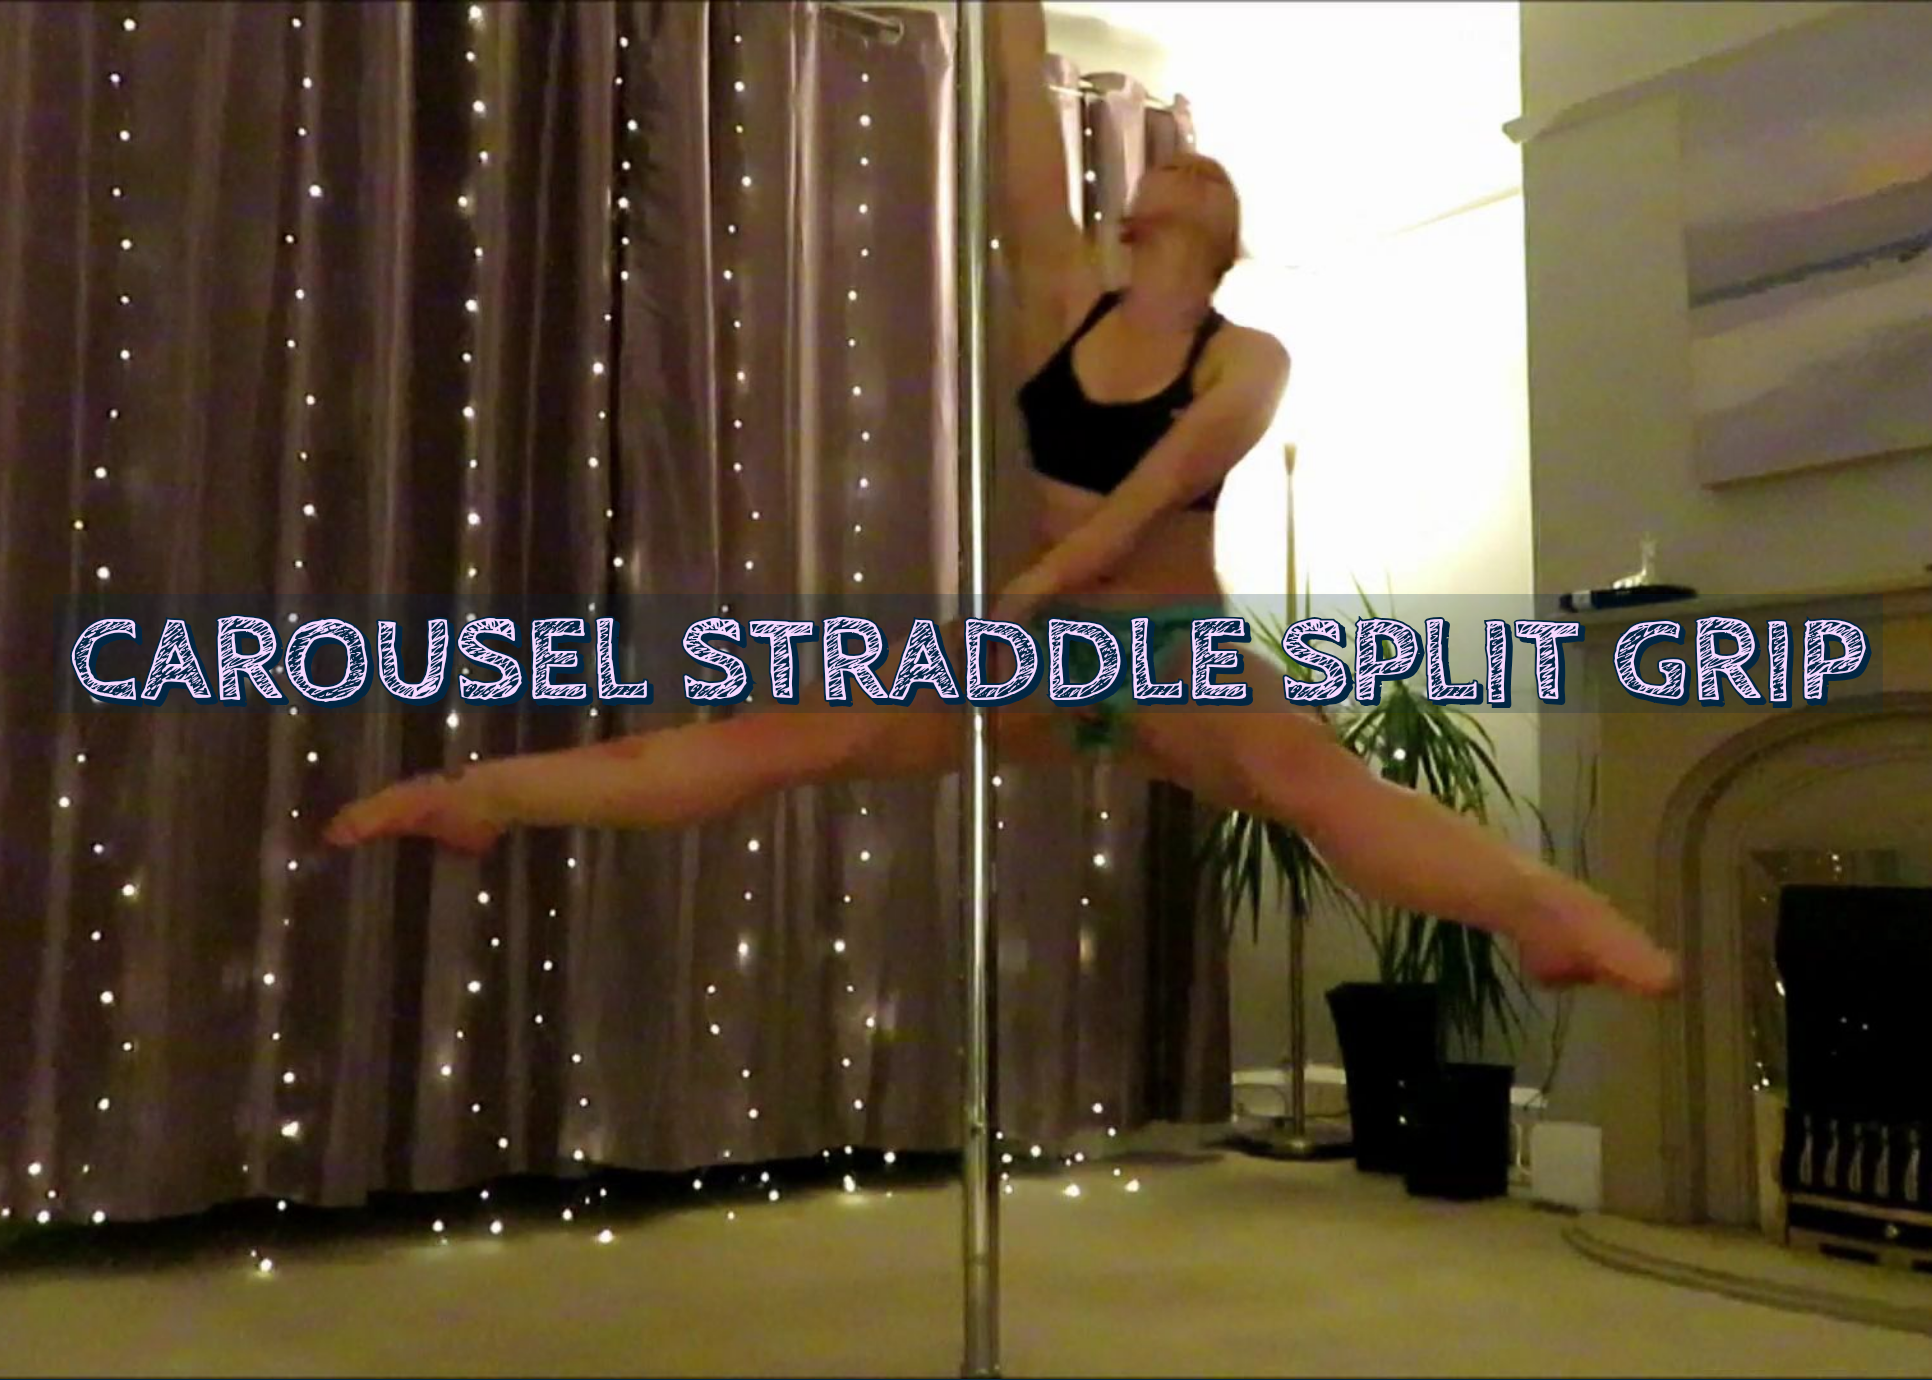 carousel straddle split grip pole dance